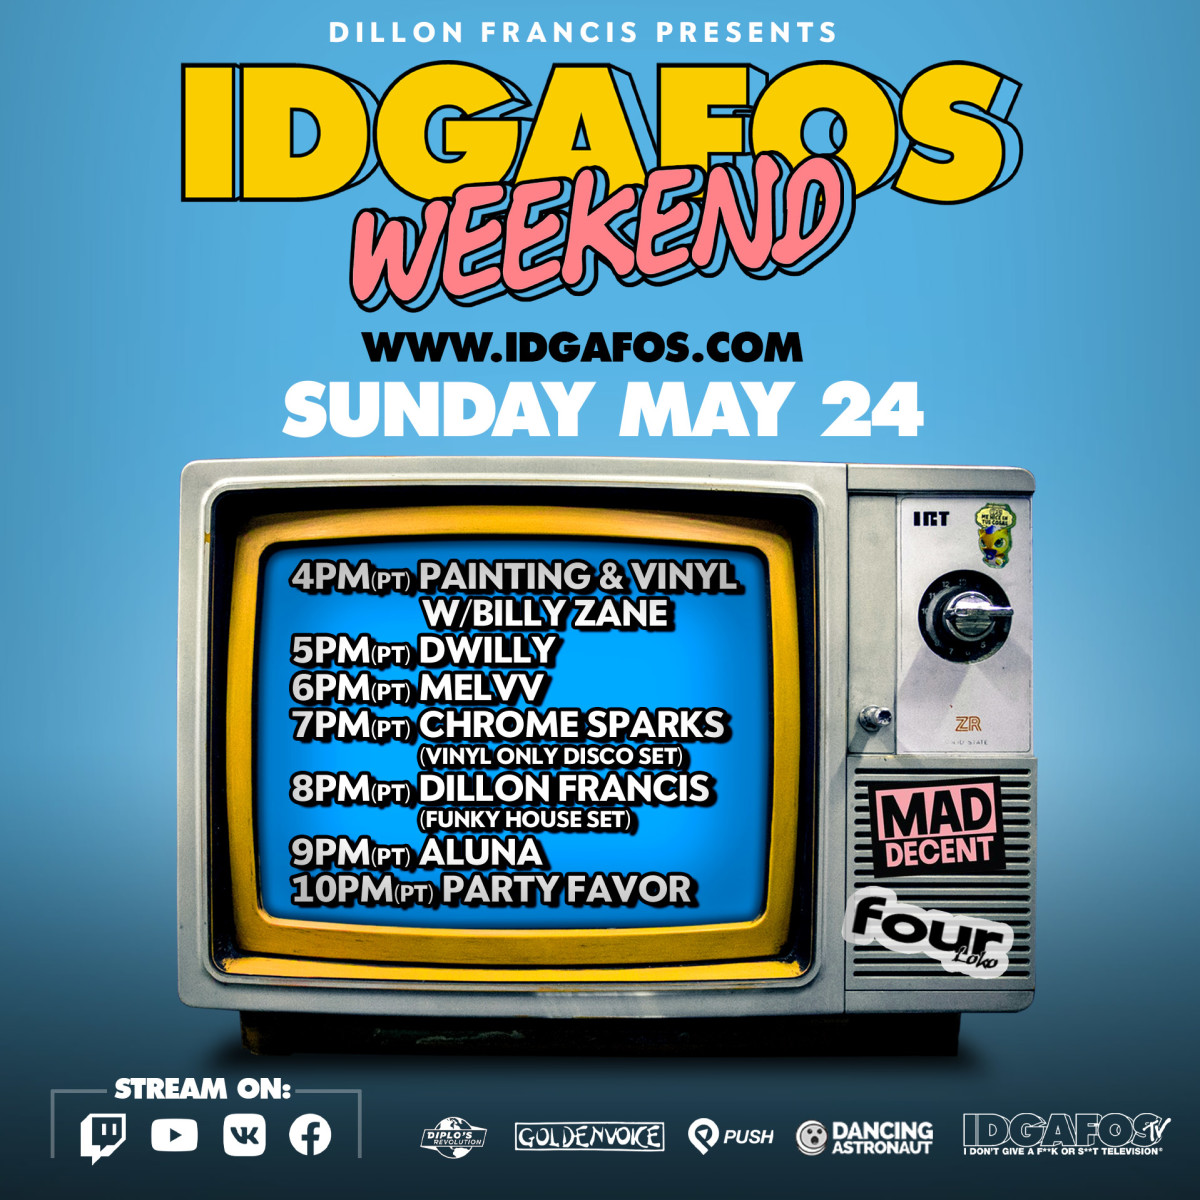 Lineup Day 2 IDGAFOS Weekend di Dillon Francis